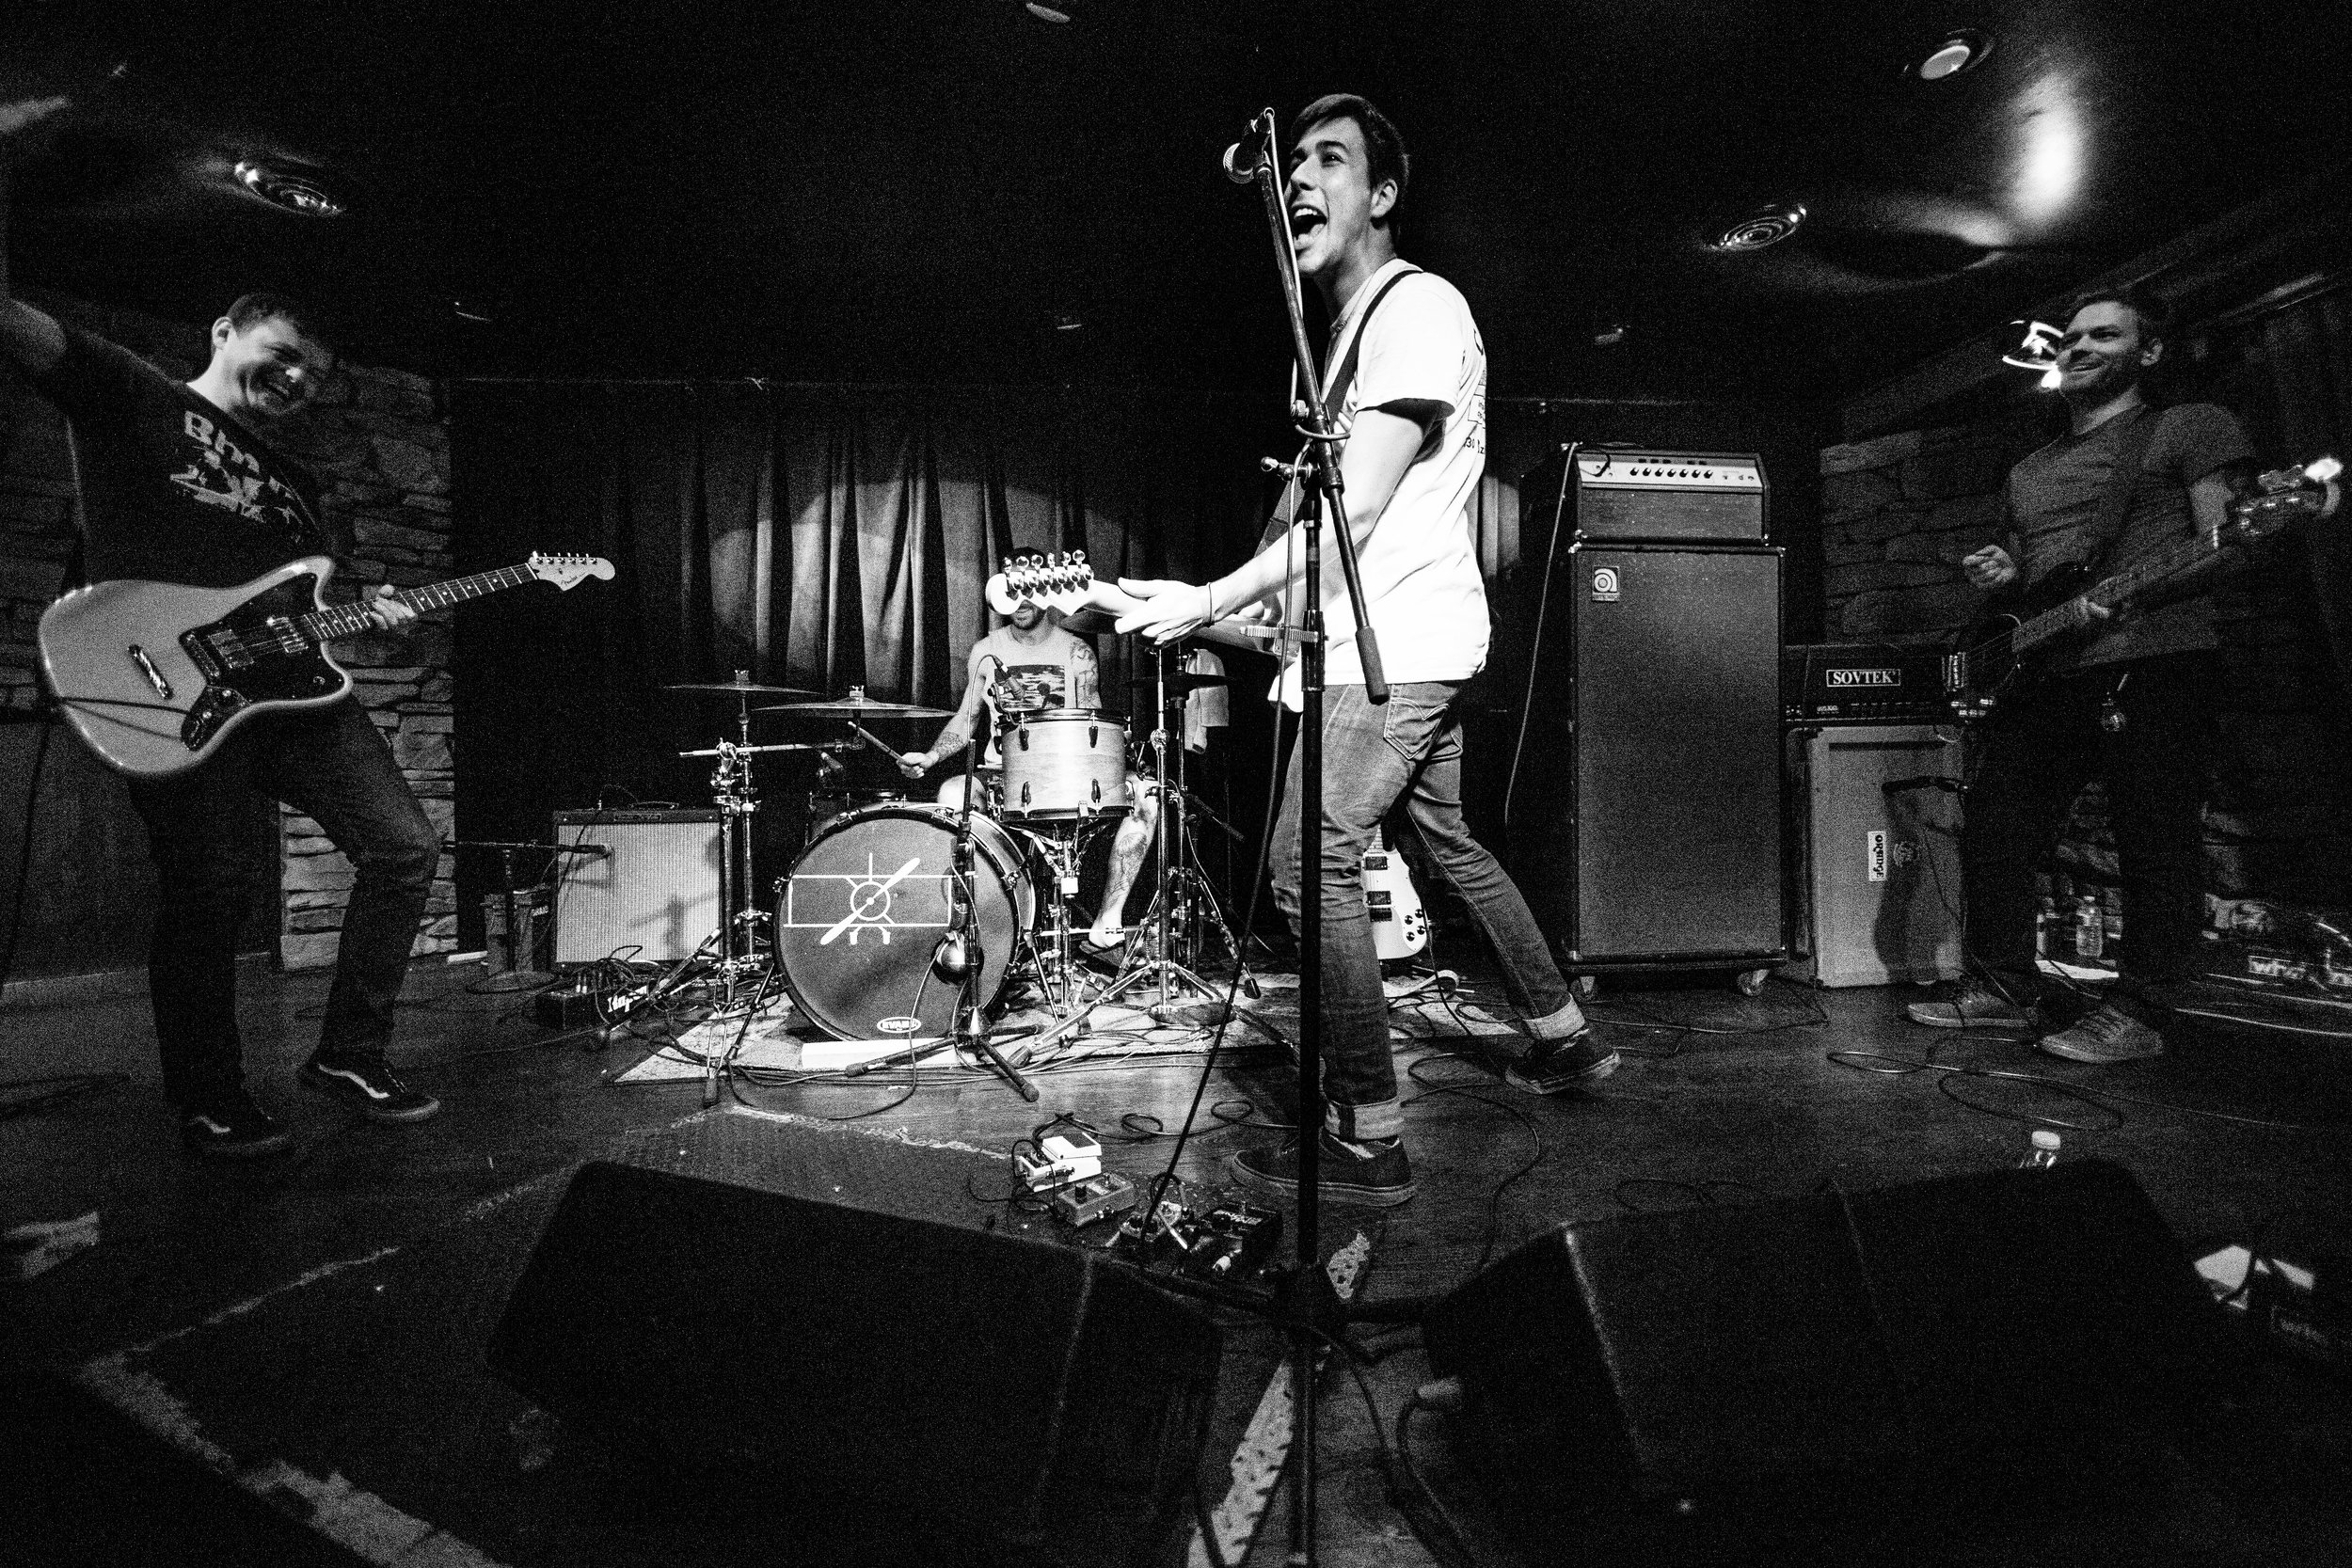 Signals Midwest perform at The Cobra Lounge in Chicago, Illinois, October 7, 2016.